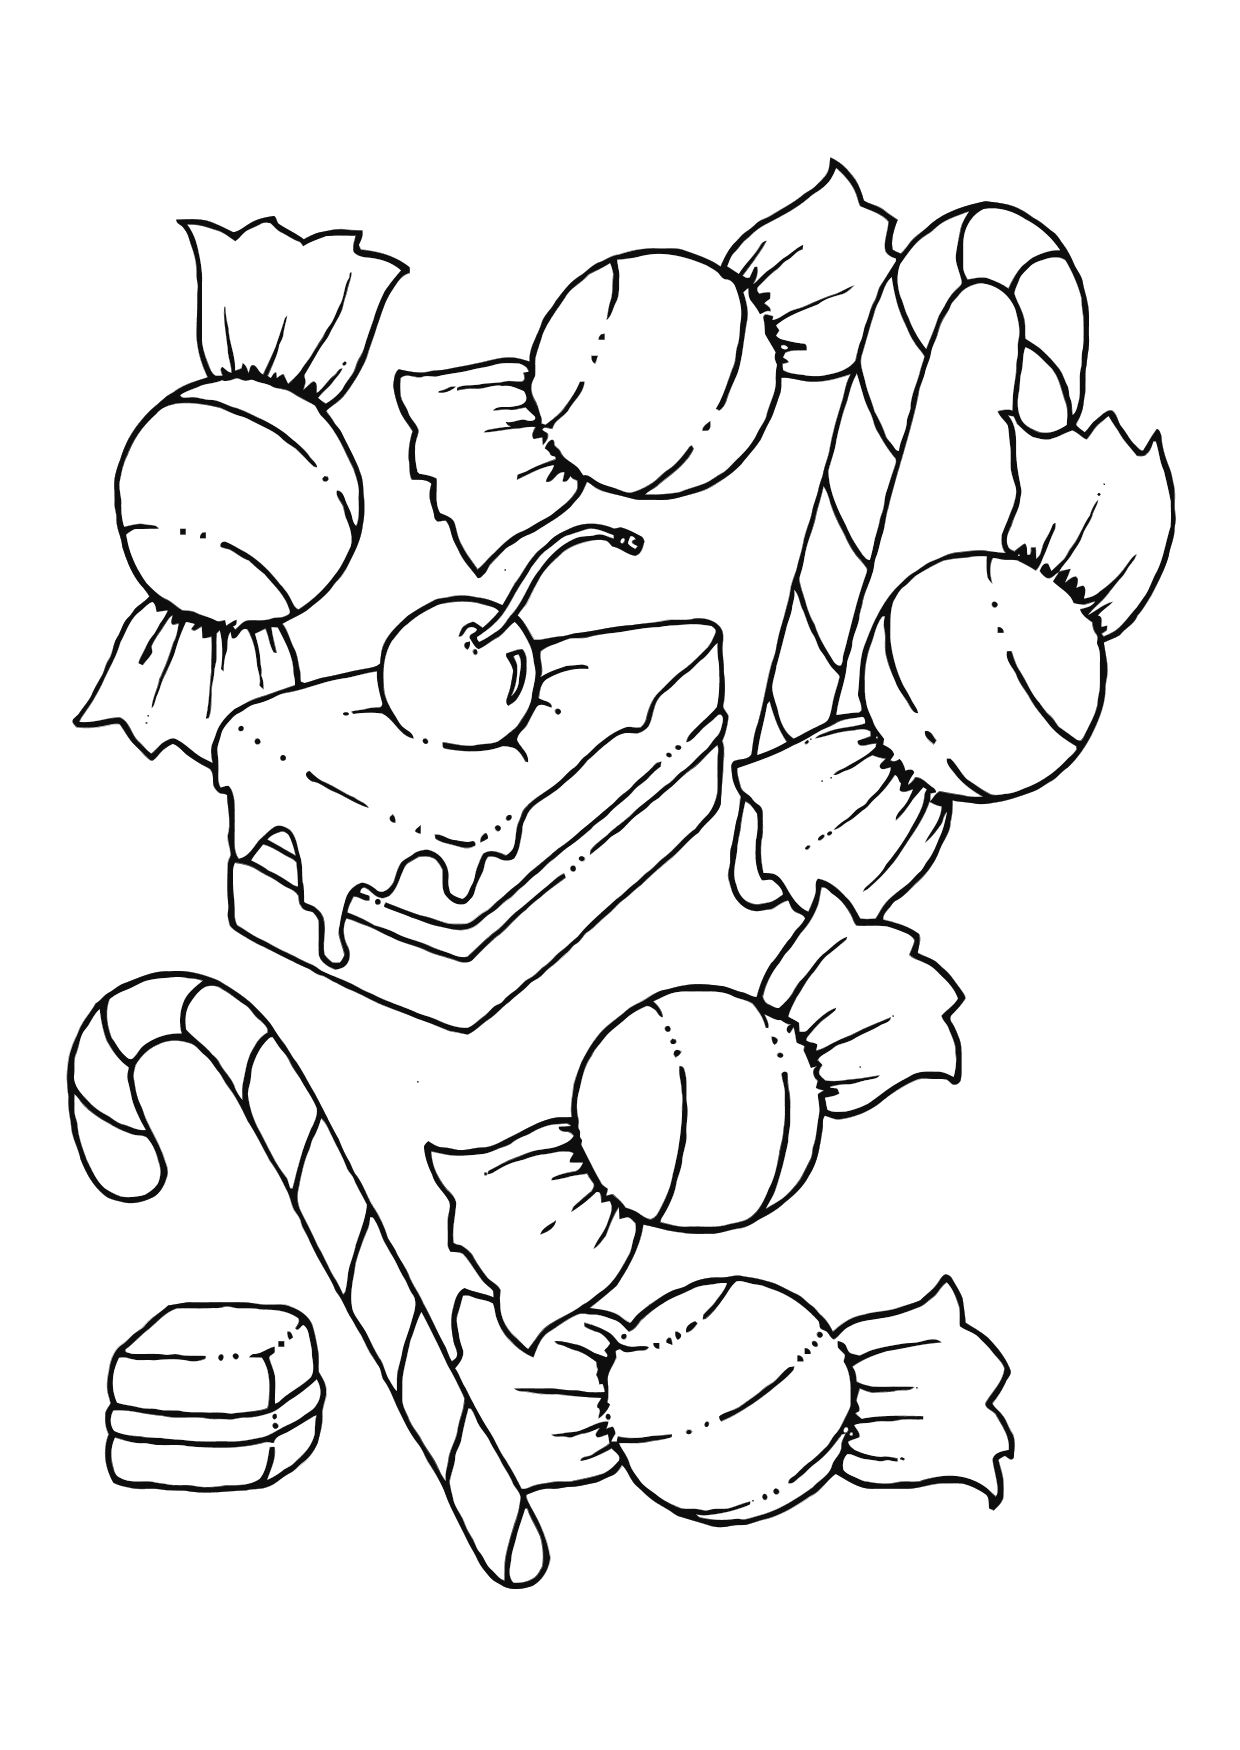 coloring pages fo candy - photo#9